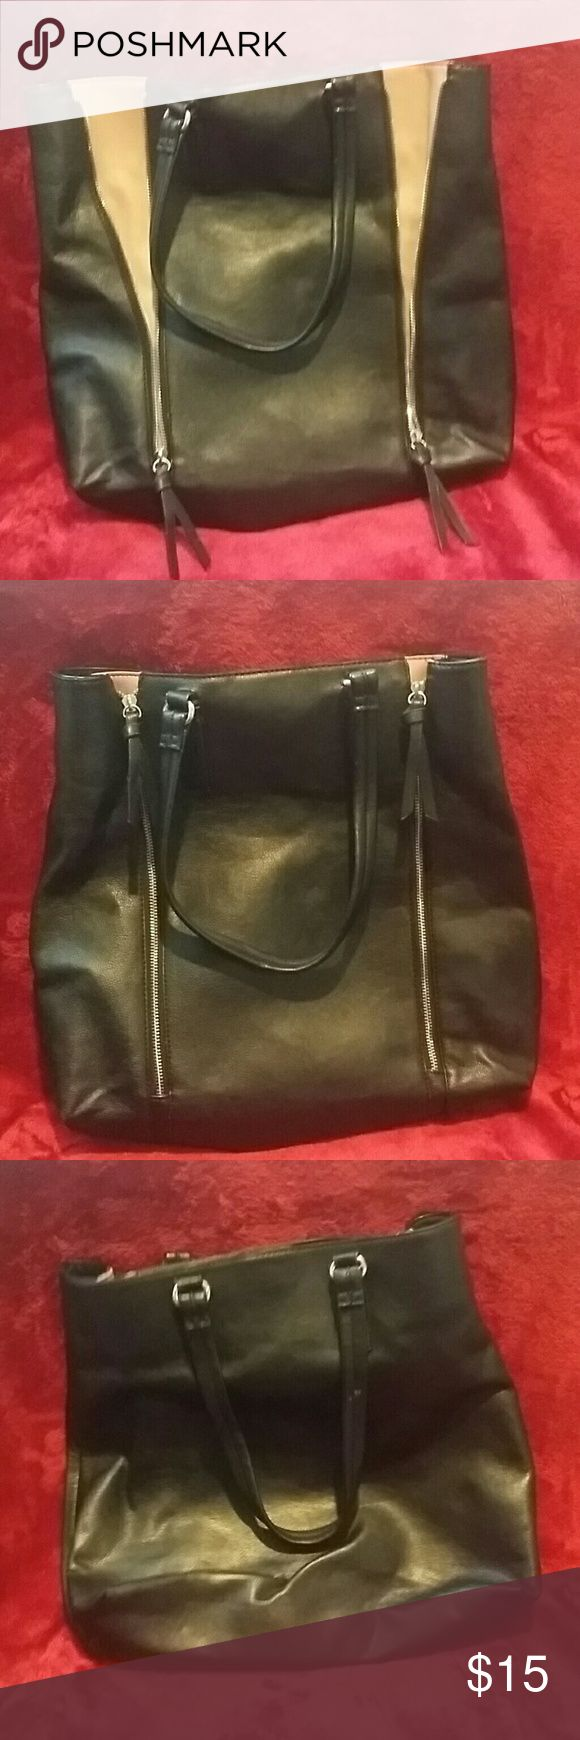 Aldo tote Black & tan Aldo tote| worn a few times  PRICE IS FIRM, UNLESS BUNDLE DISCOUNT APPLIED Aldo Bags Totes